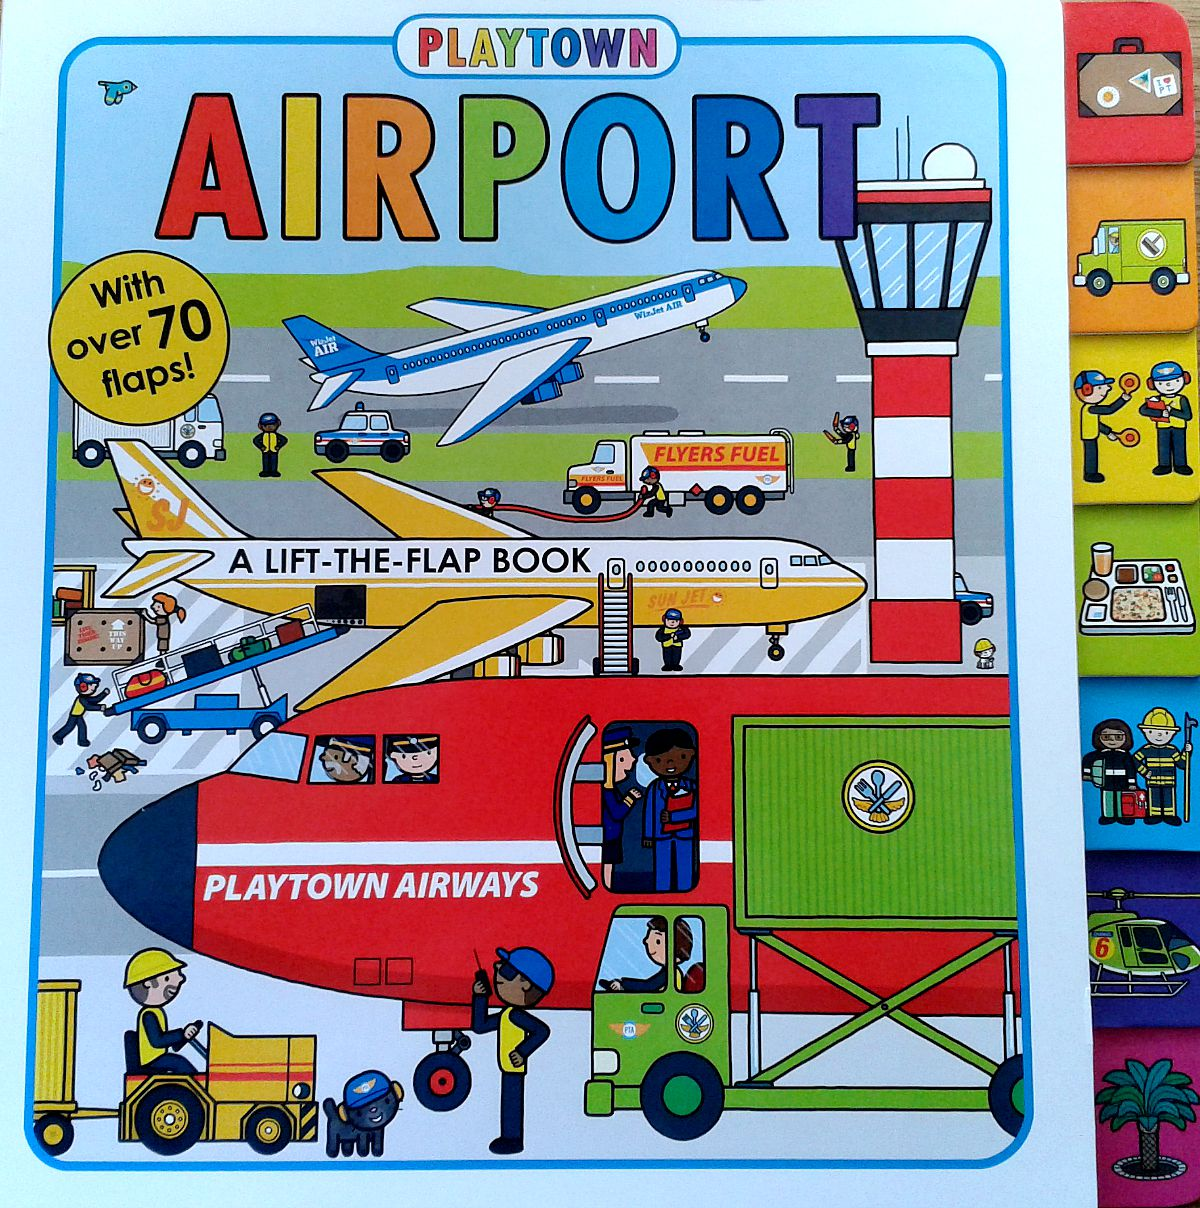 Playtown Airport book cover